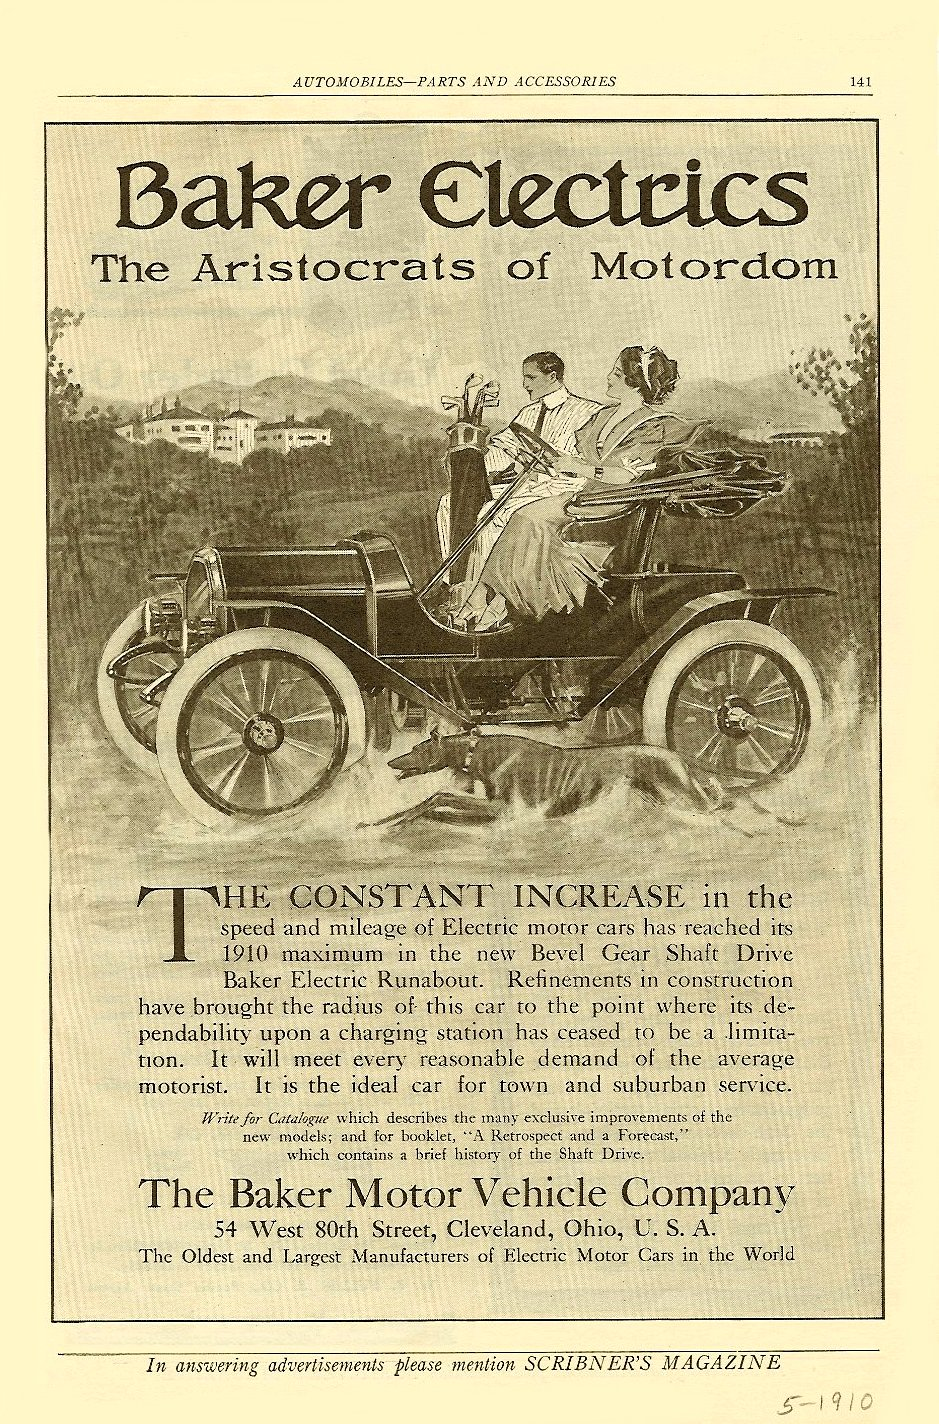 "1910 5 Baker Electrics ""The Aristocrats of Motordom"" SCRIBNER'S MAGAZINE AUTOMOBILES – PARTS AND ACCESSORIES May 1910 6″x9.5″ page 141"